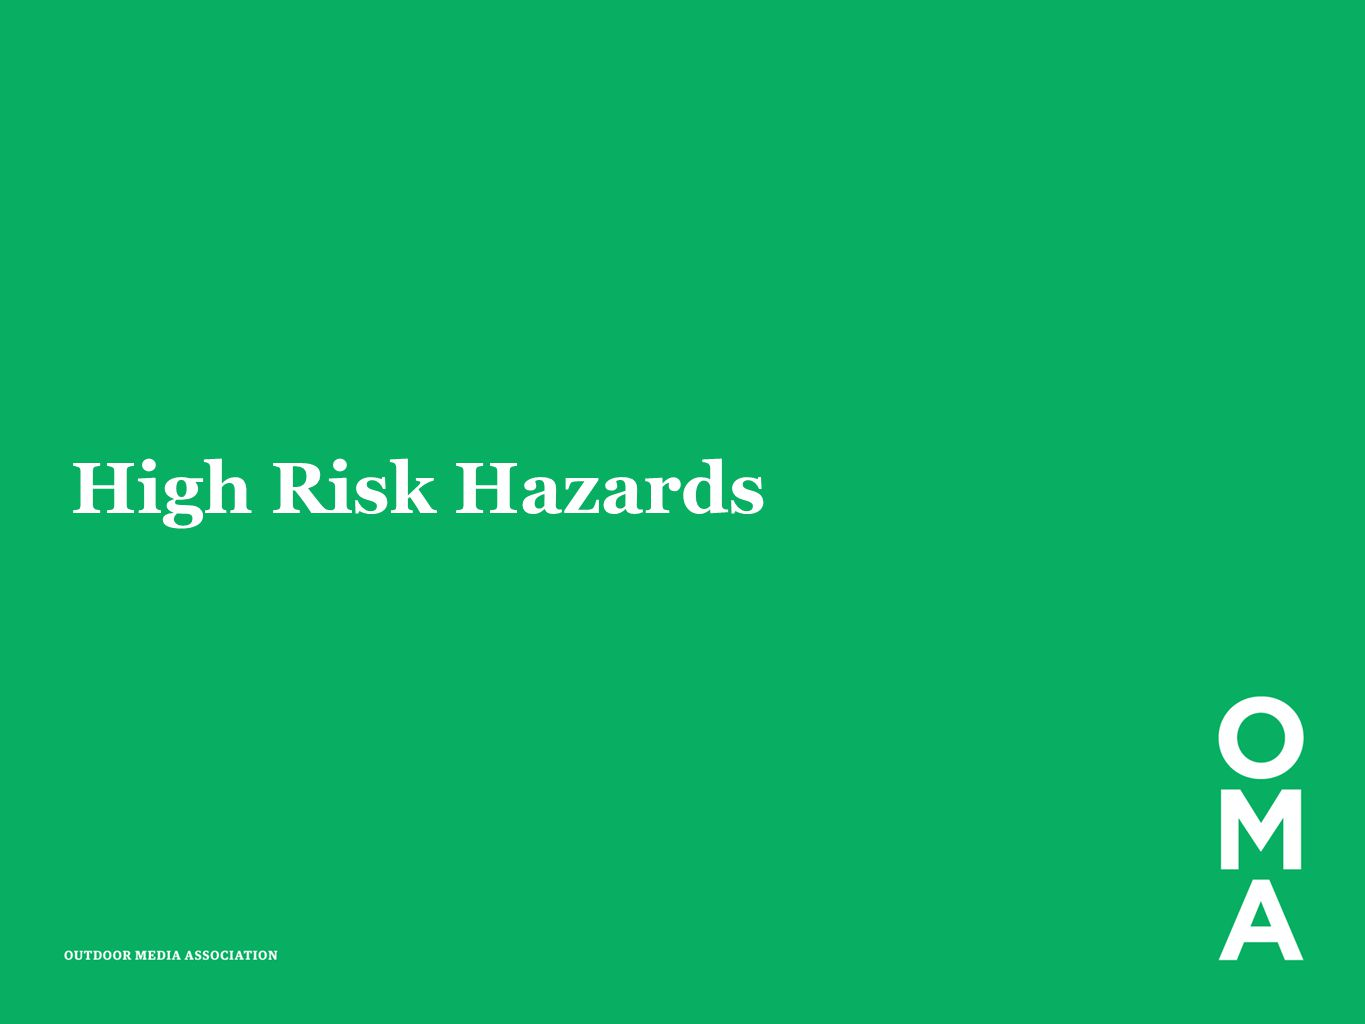 High Risk Hazards